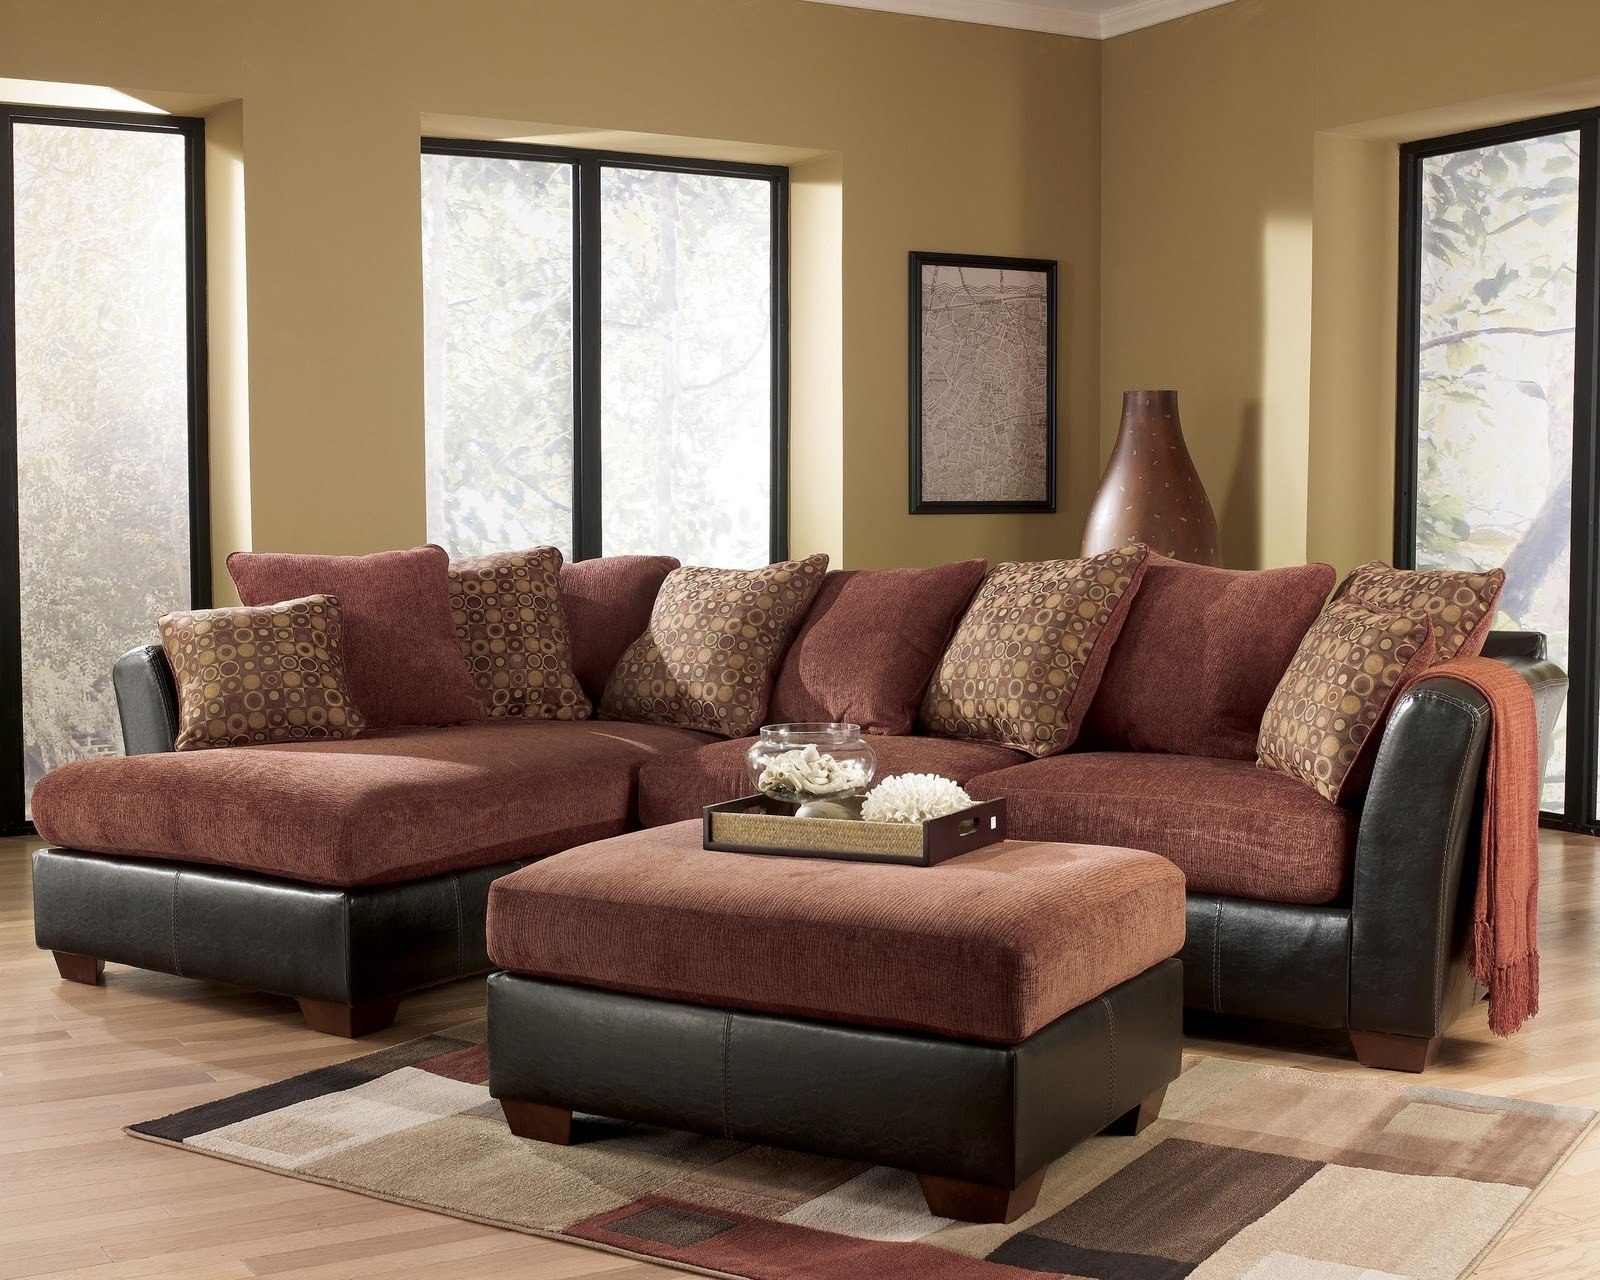 Ashley Furniture – Larson 31400 Cinnamon Sofa Sectional – Royal intended for Royal Furniture Sectional Sofas (Image 2 of 10)